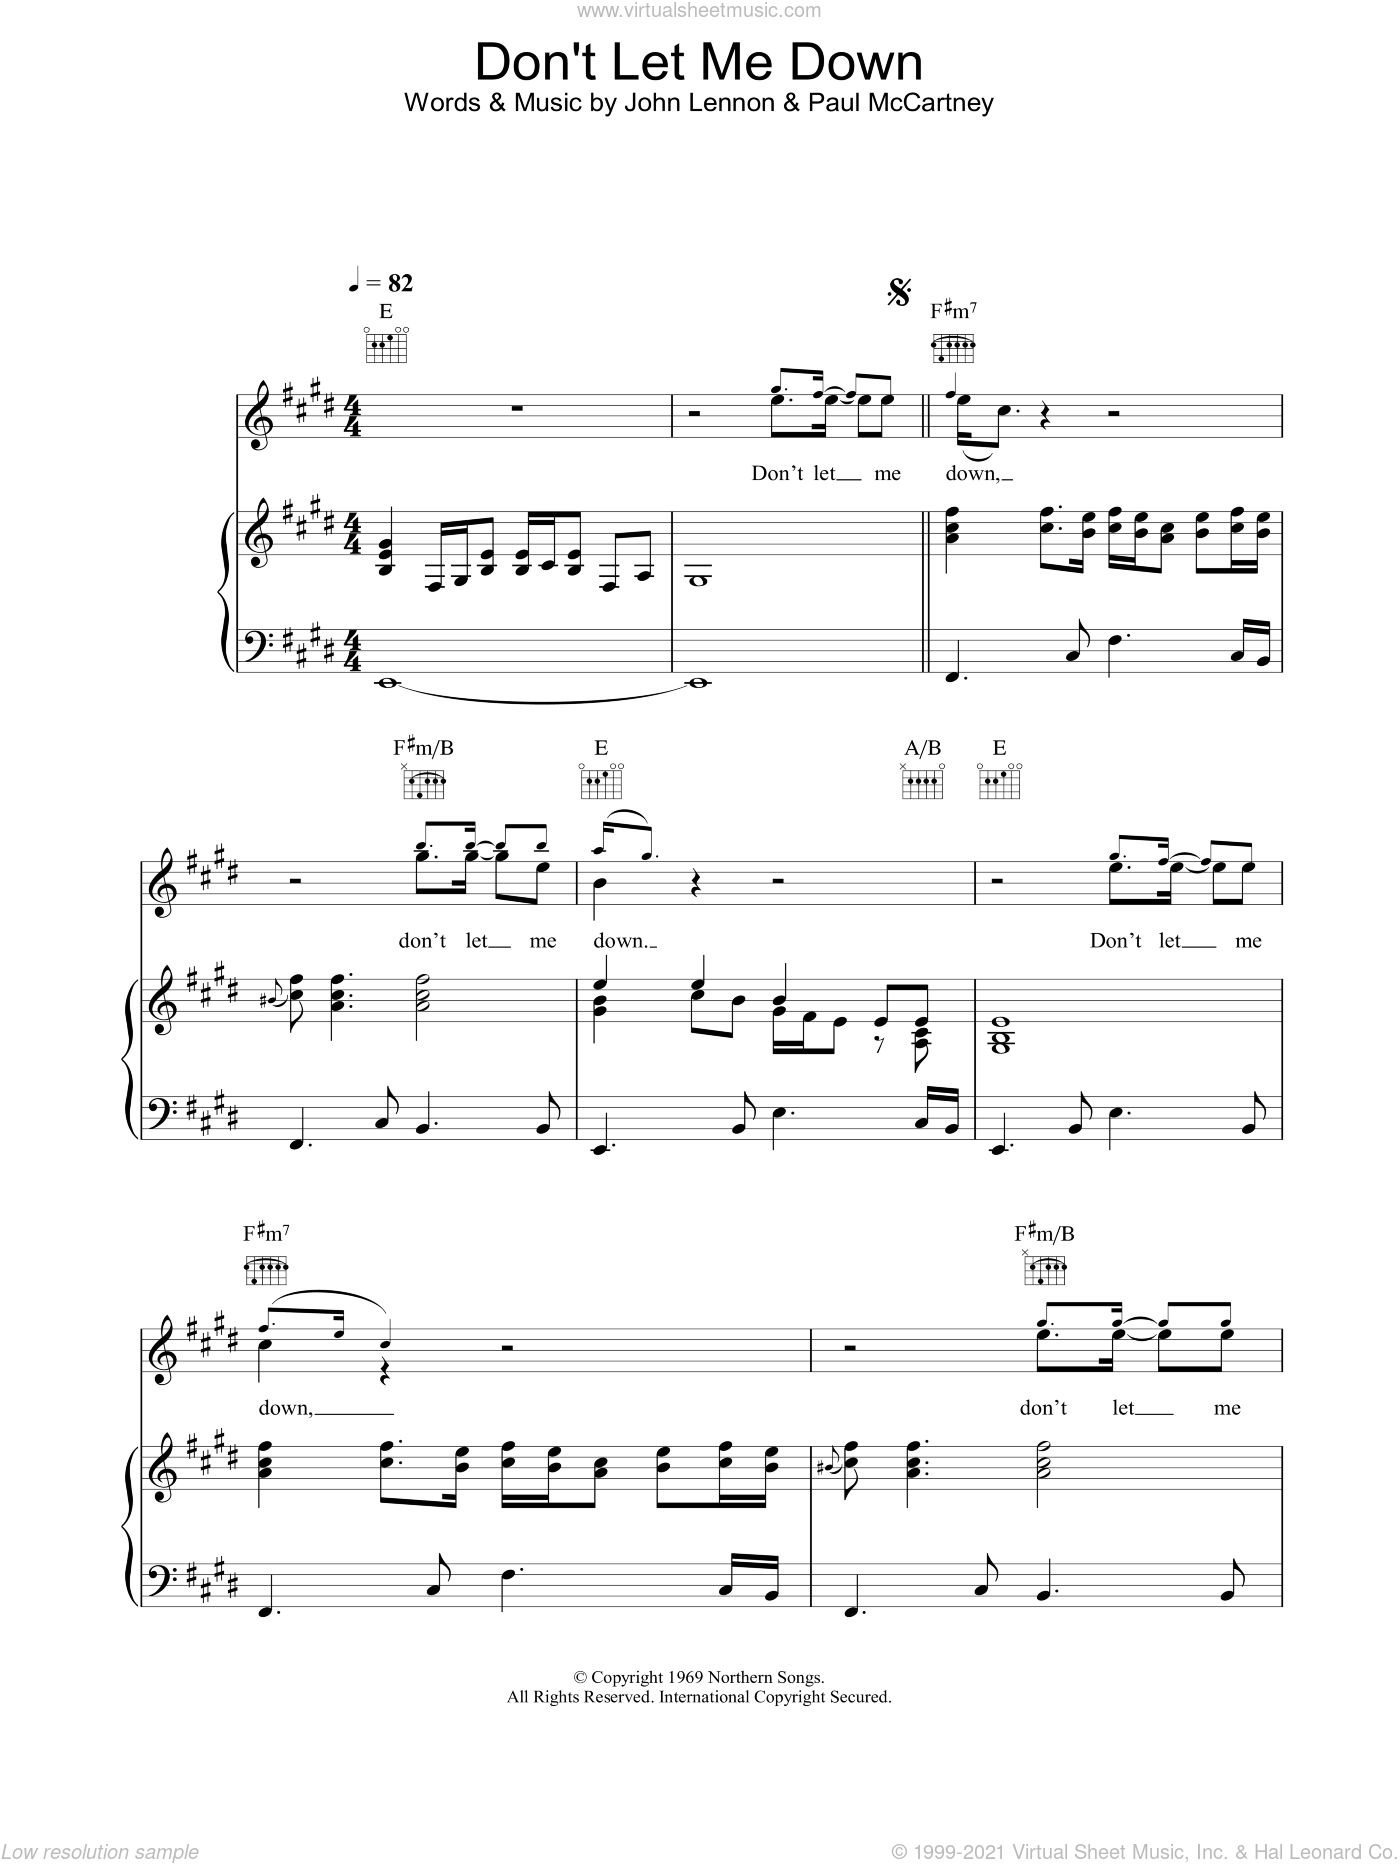 Don't Let Me Down sheet music for voice, piano or guitar by The Beatles, John Lennon and Paul McCartney, intermediate skill level